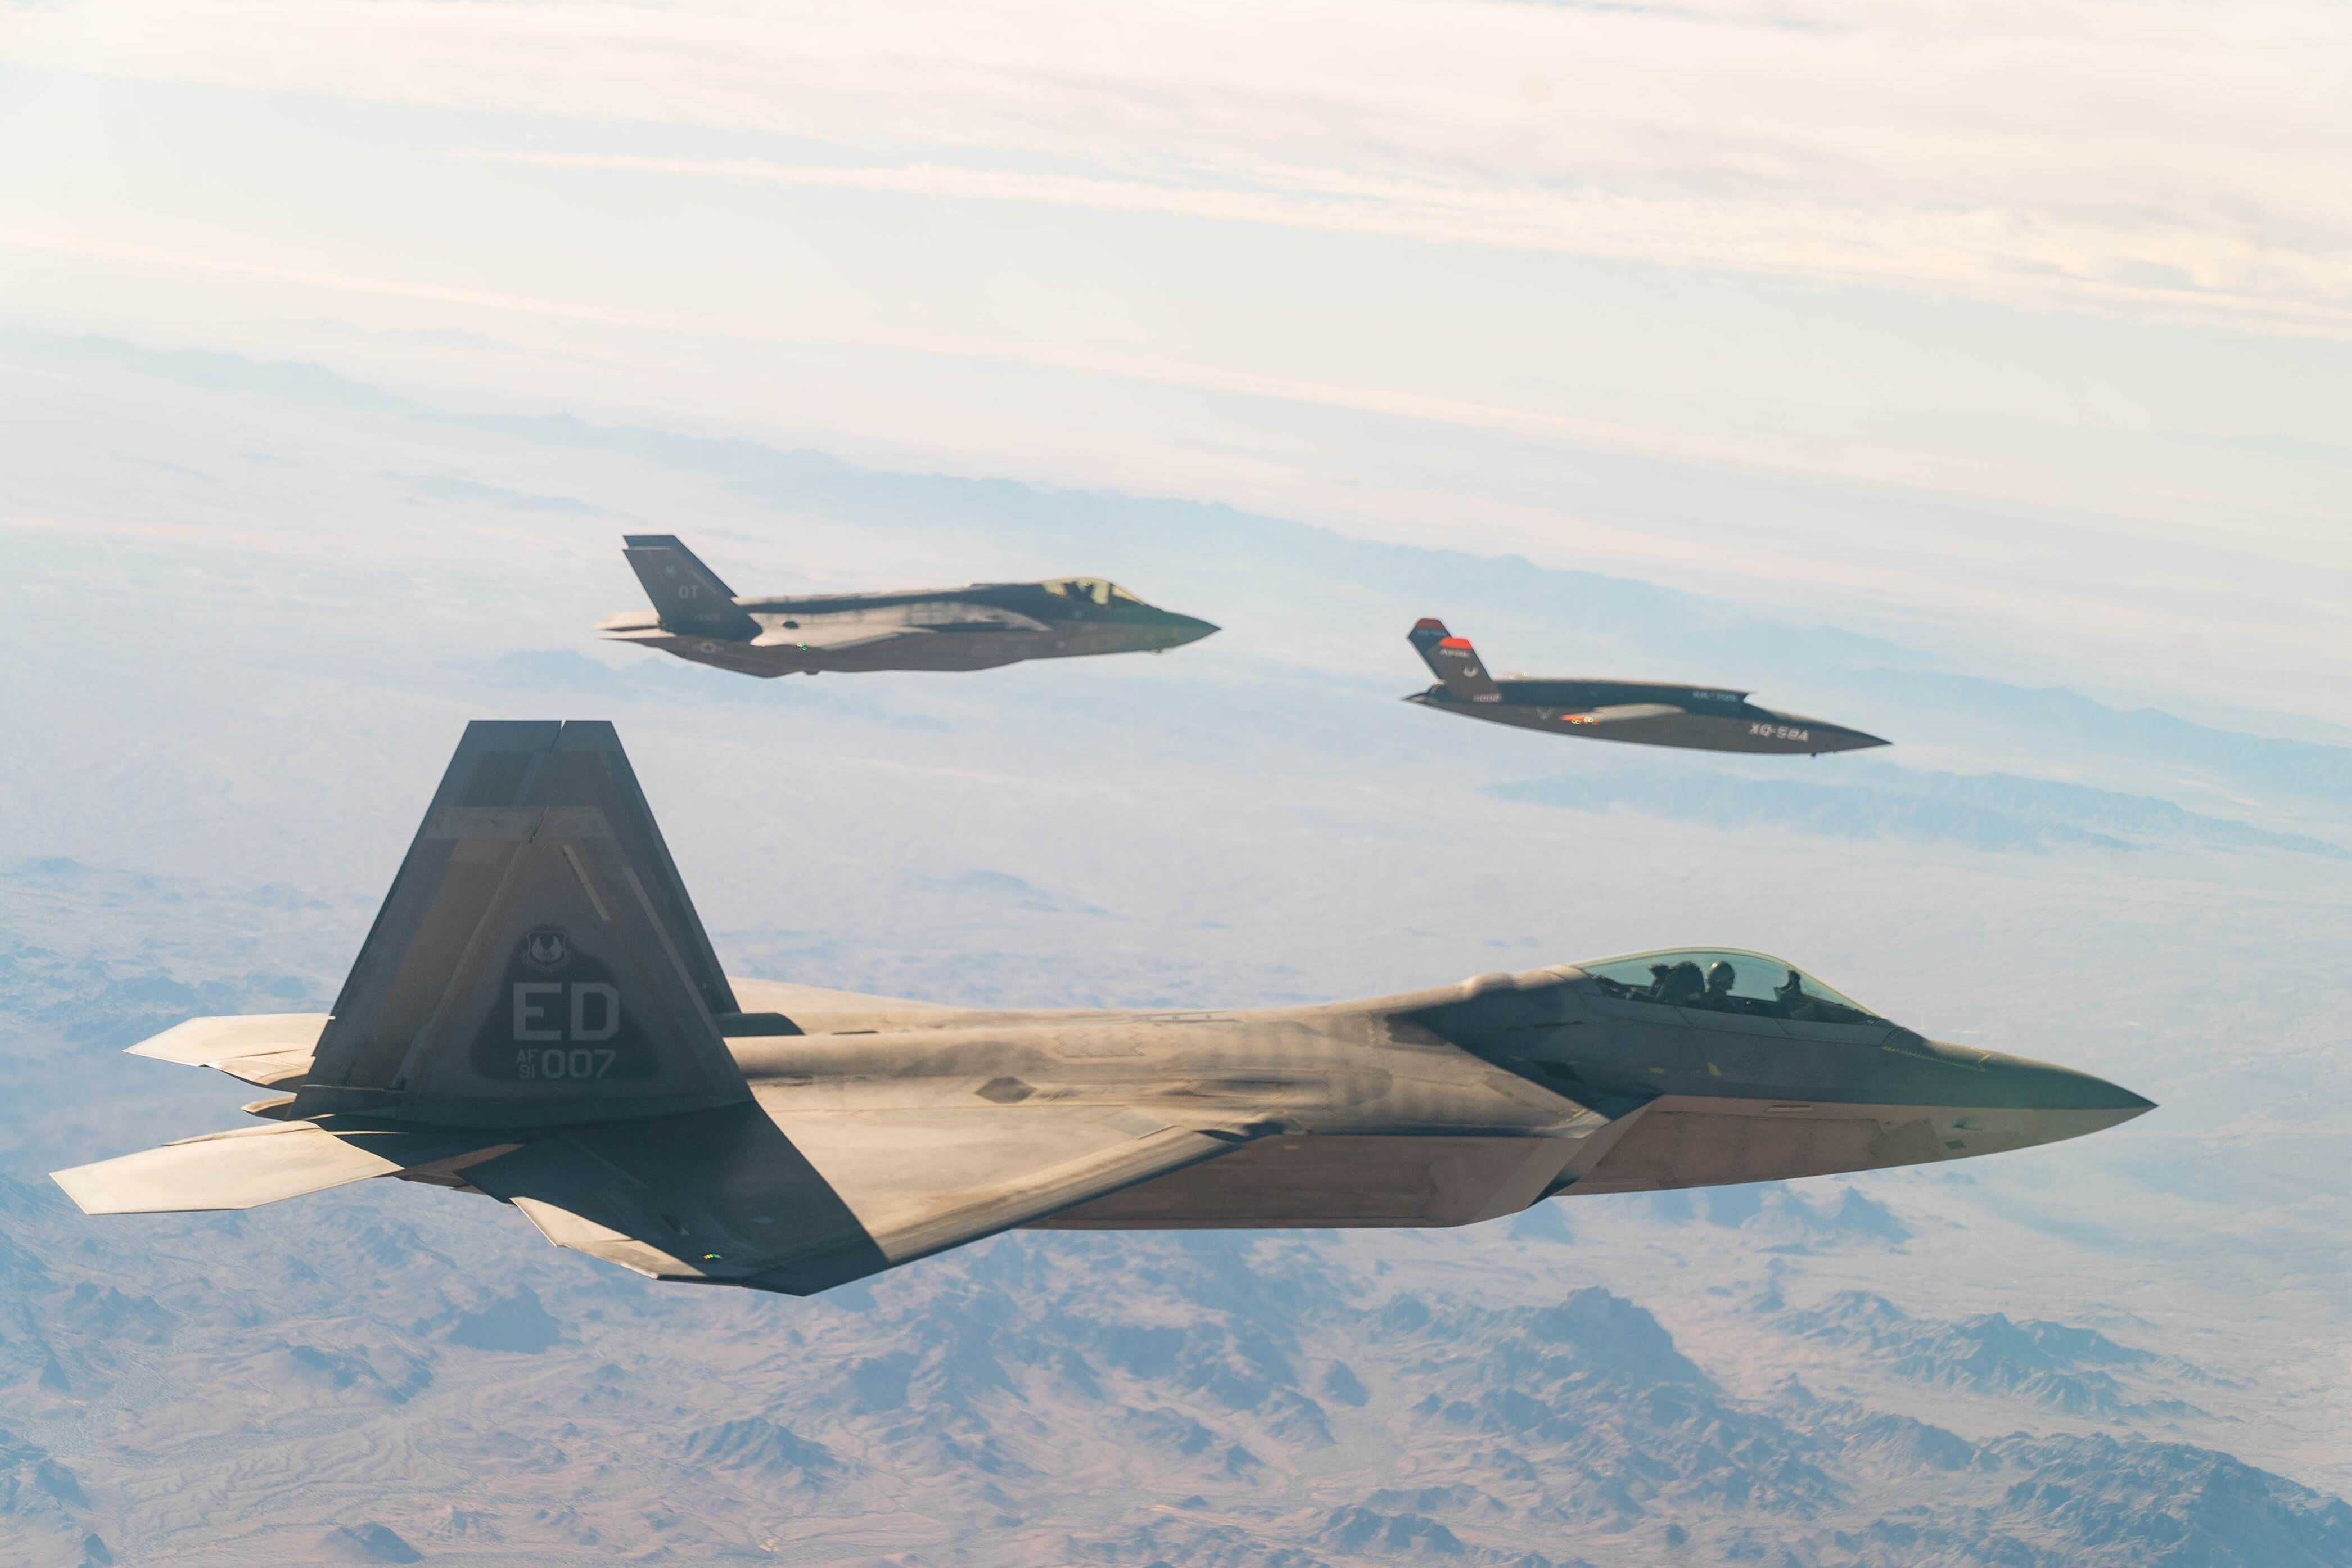 usaf_f-22_raptor_and_f-35a_lightning_ii_fly_in_formation_with_xq-58a_valkyrie.jpg